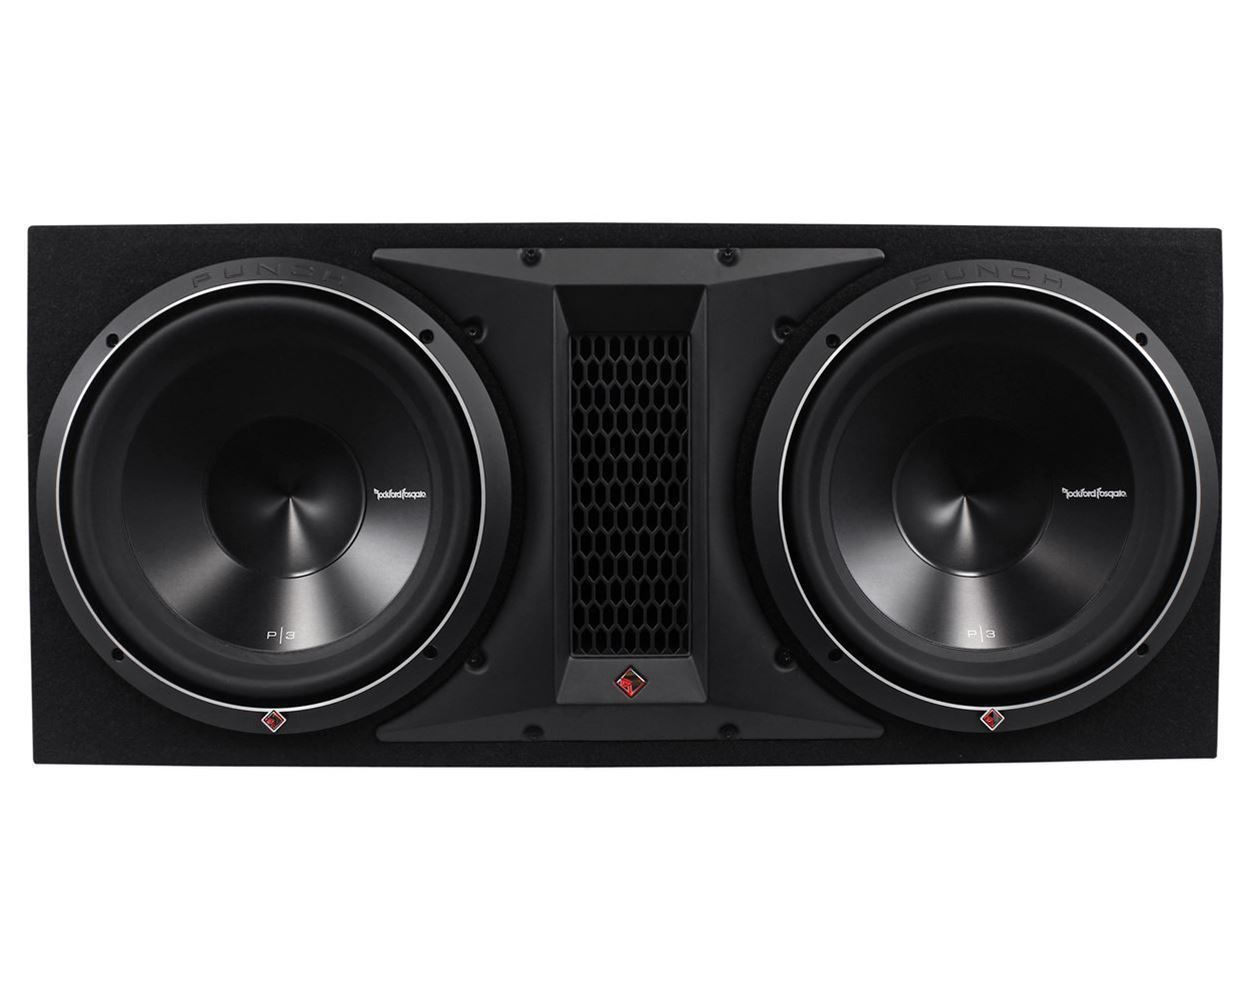 Rockford Fosgate P32x12 12 Inch 2400 Watt Dual Loaded Subwoofer Sub Enclosure 780687333003 Ebay Subwoofer Enclosure Rockford Fosgate Rockford